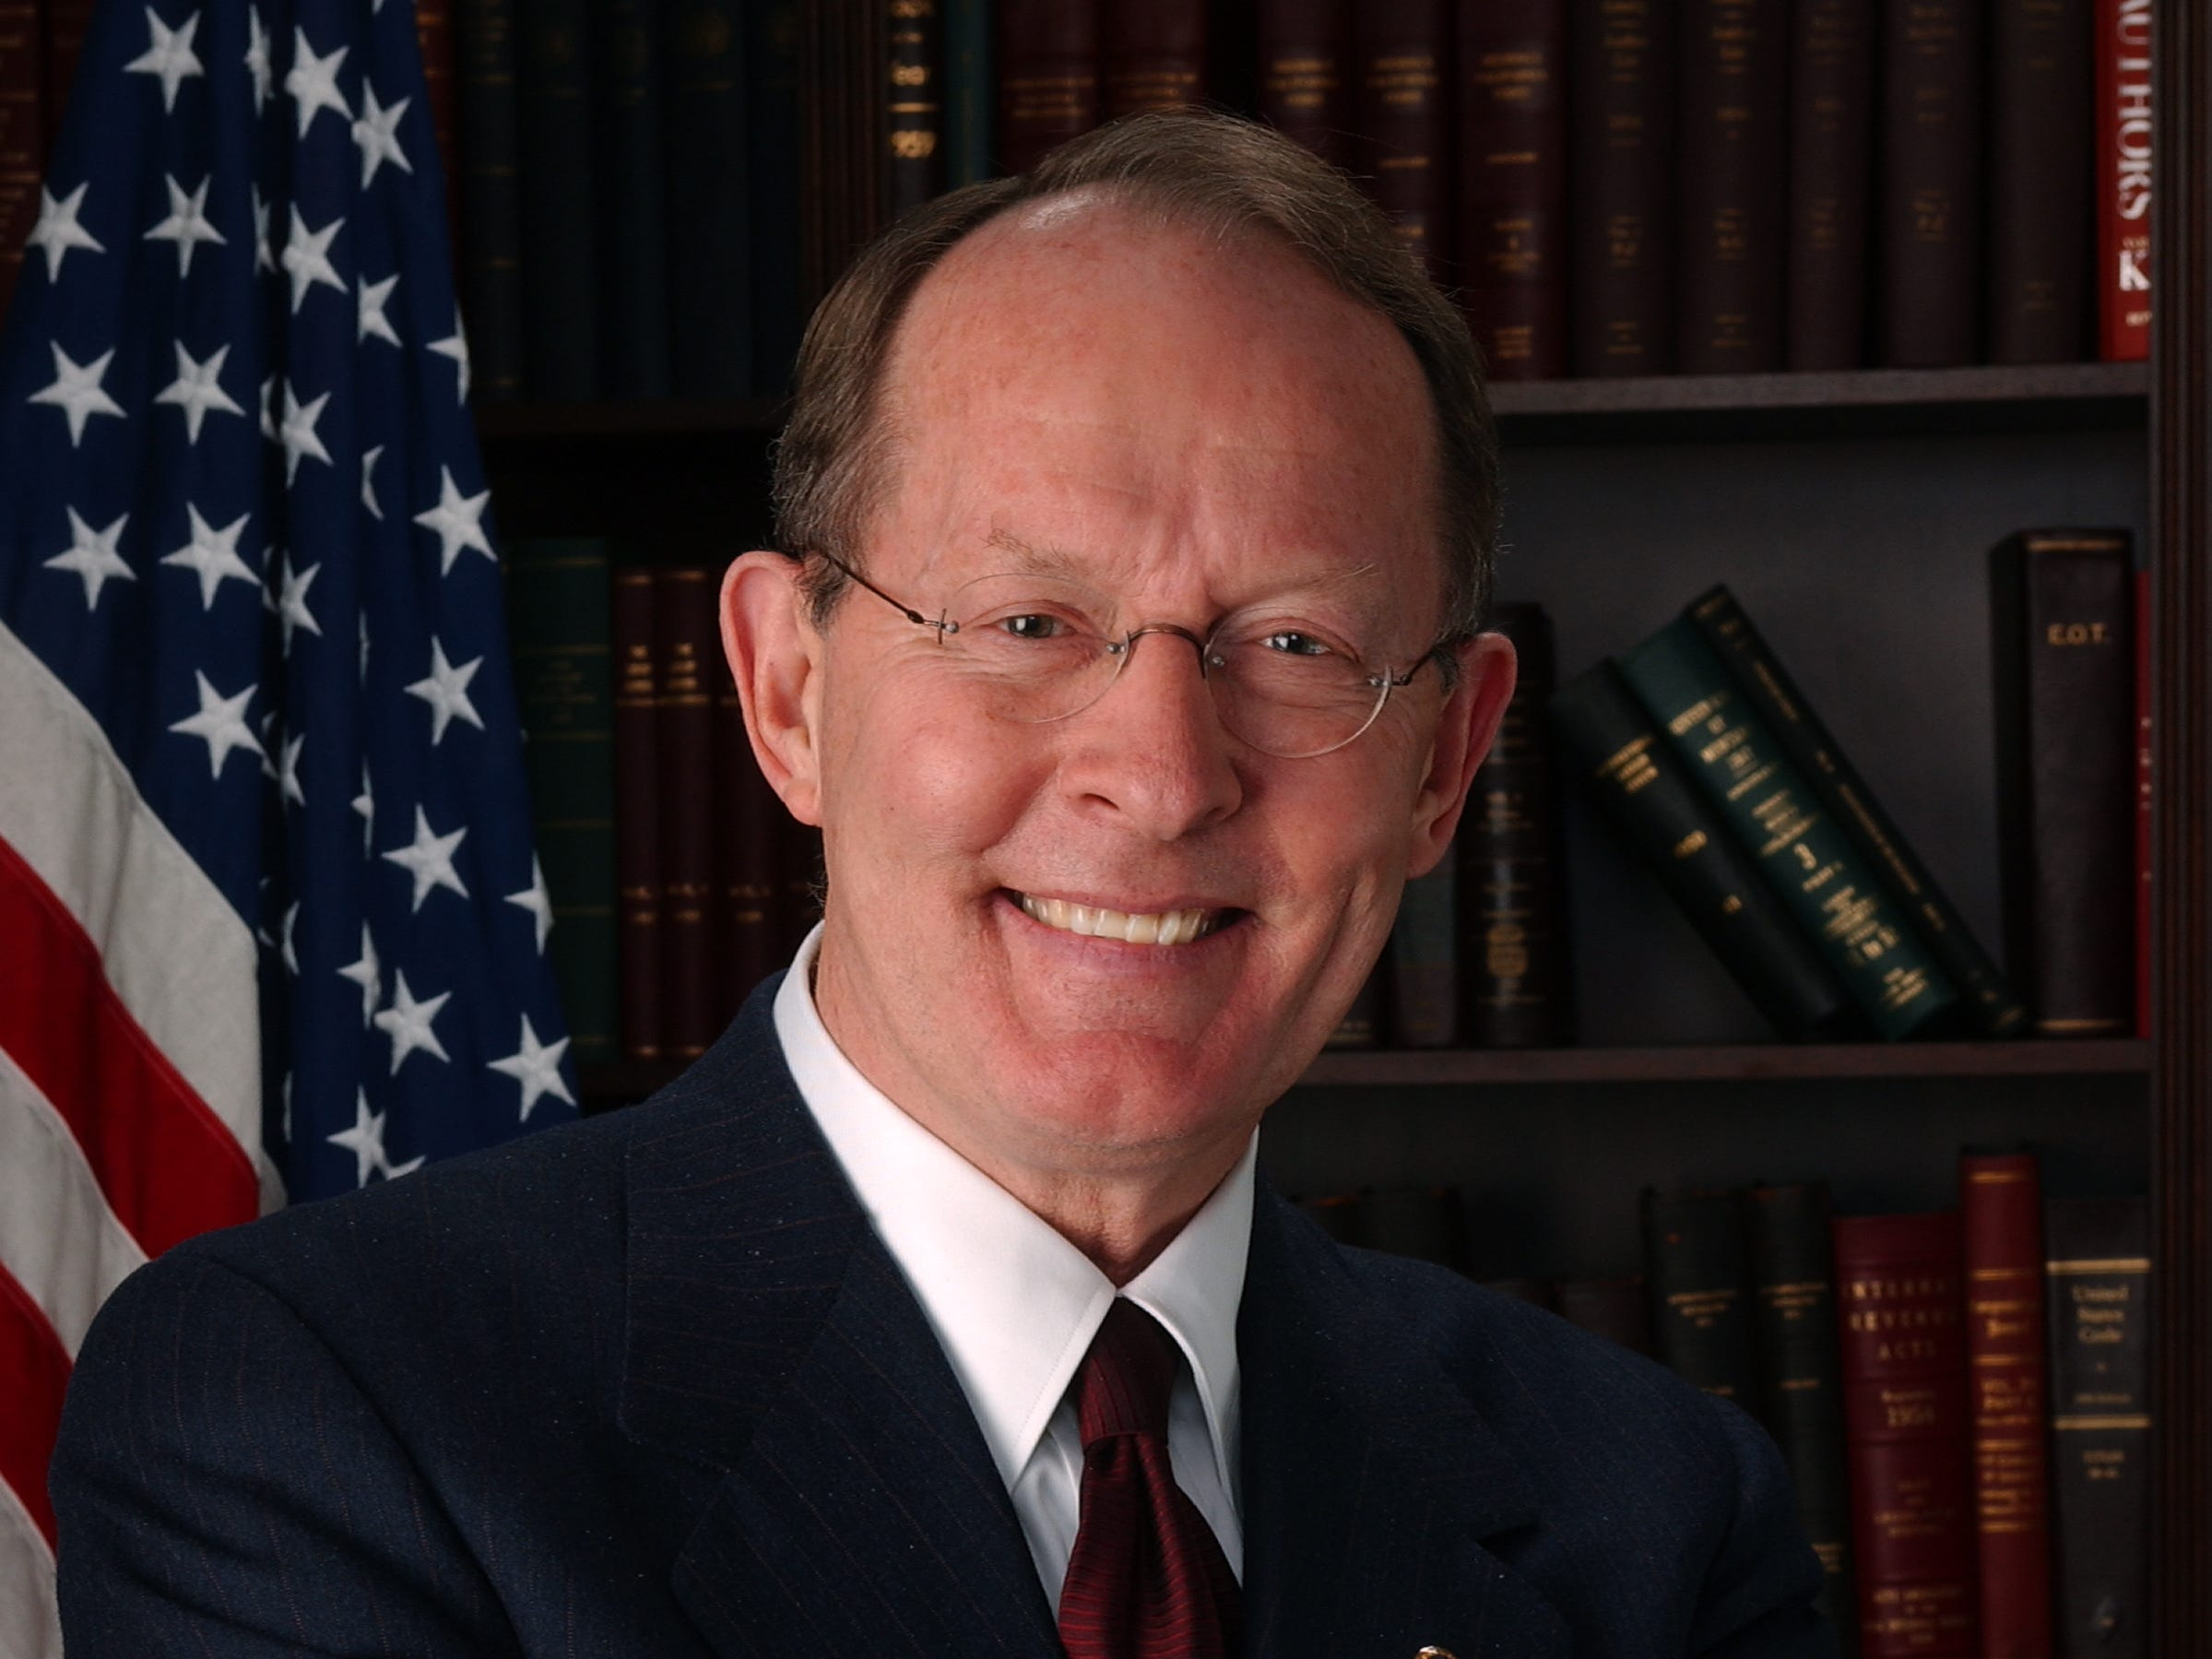 U.S. Senator Lamar Alexander, Republican of Tennessee, is a member of the Senate's Environment and Public Works Committee which oversees TVA.